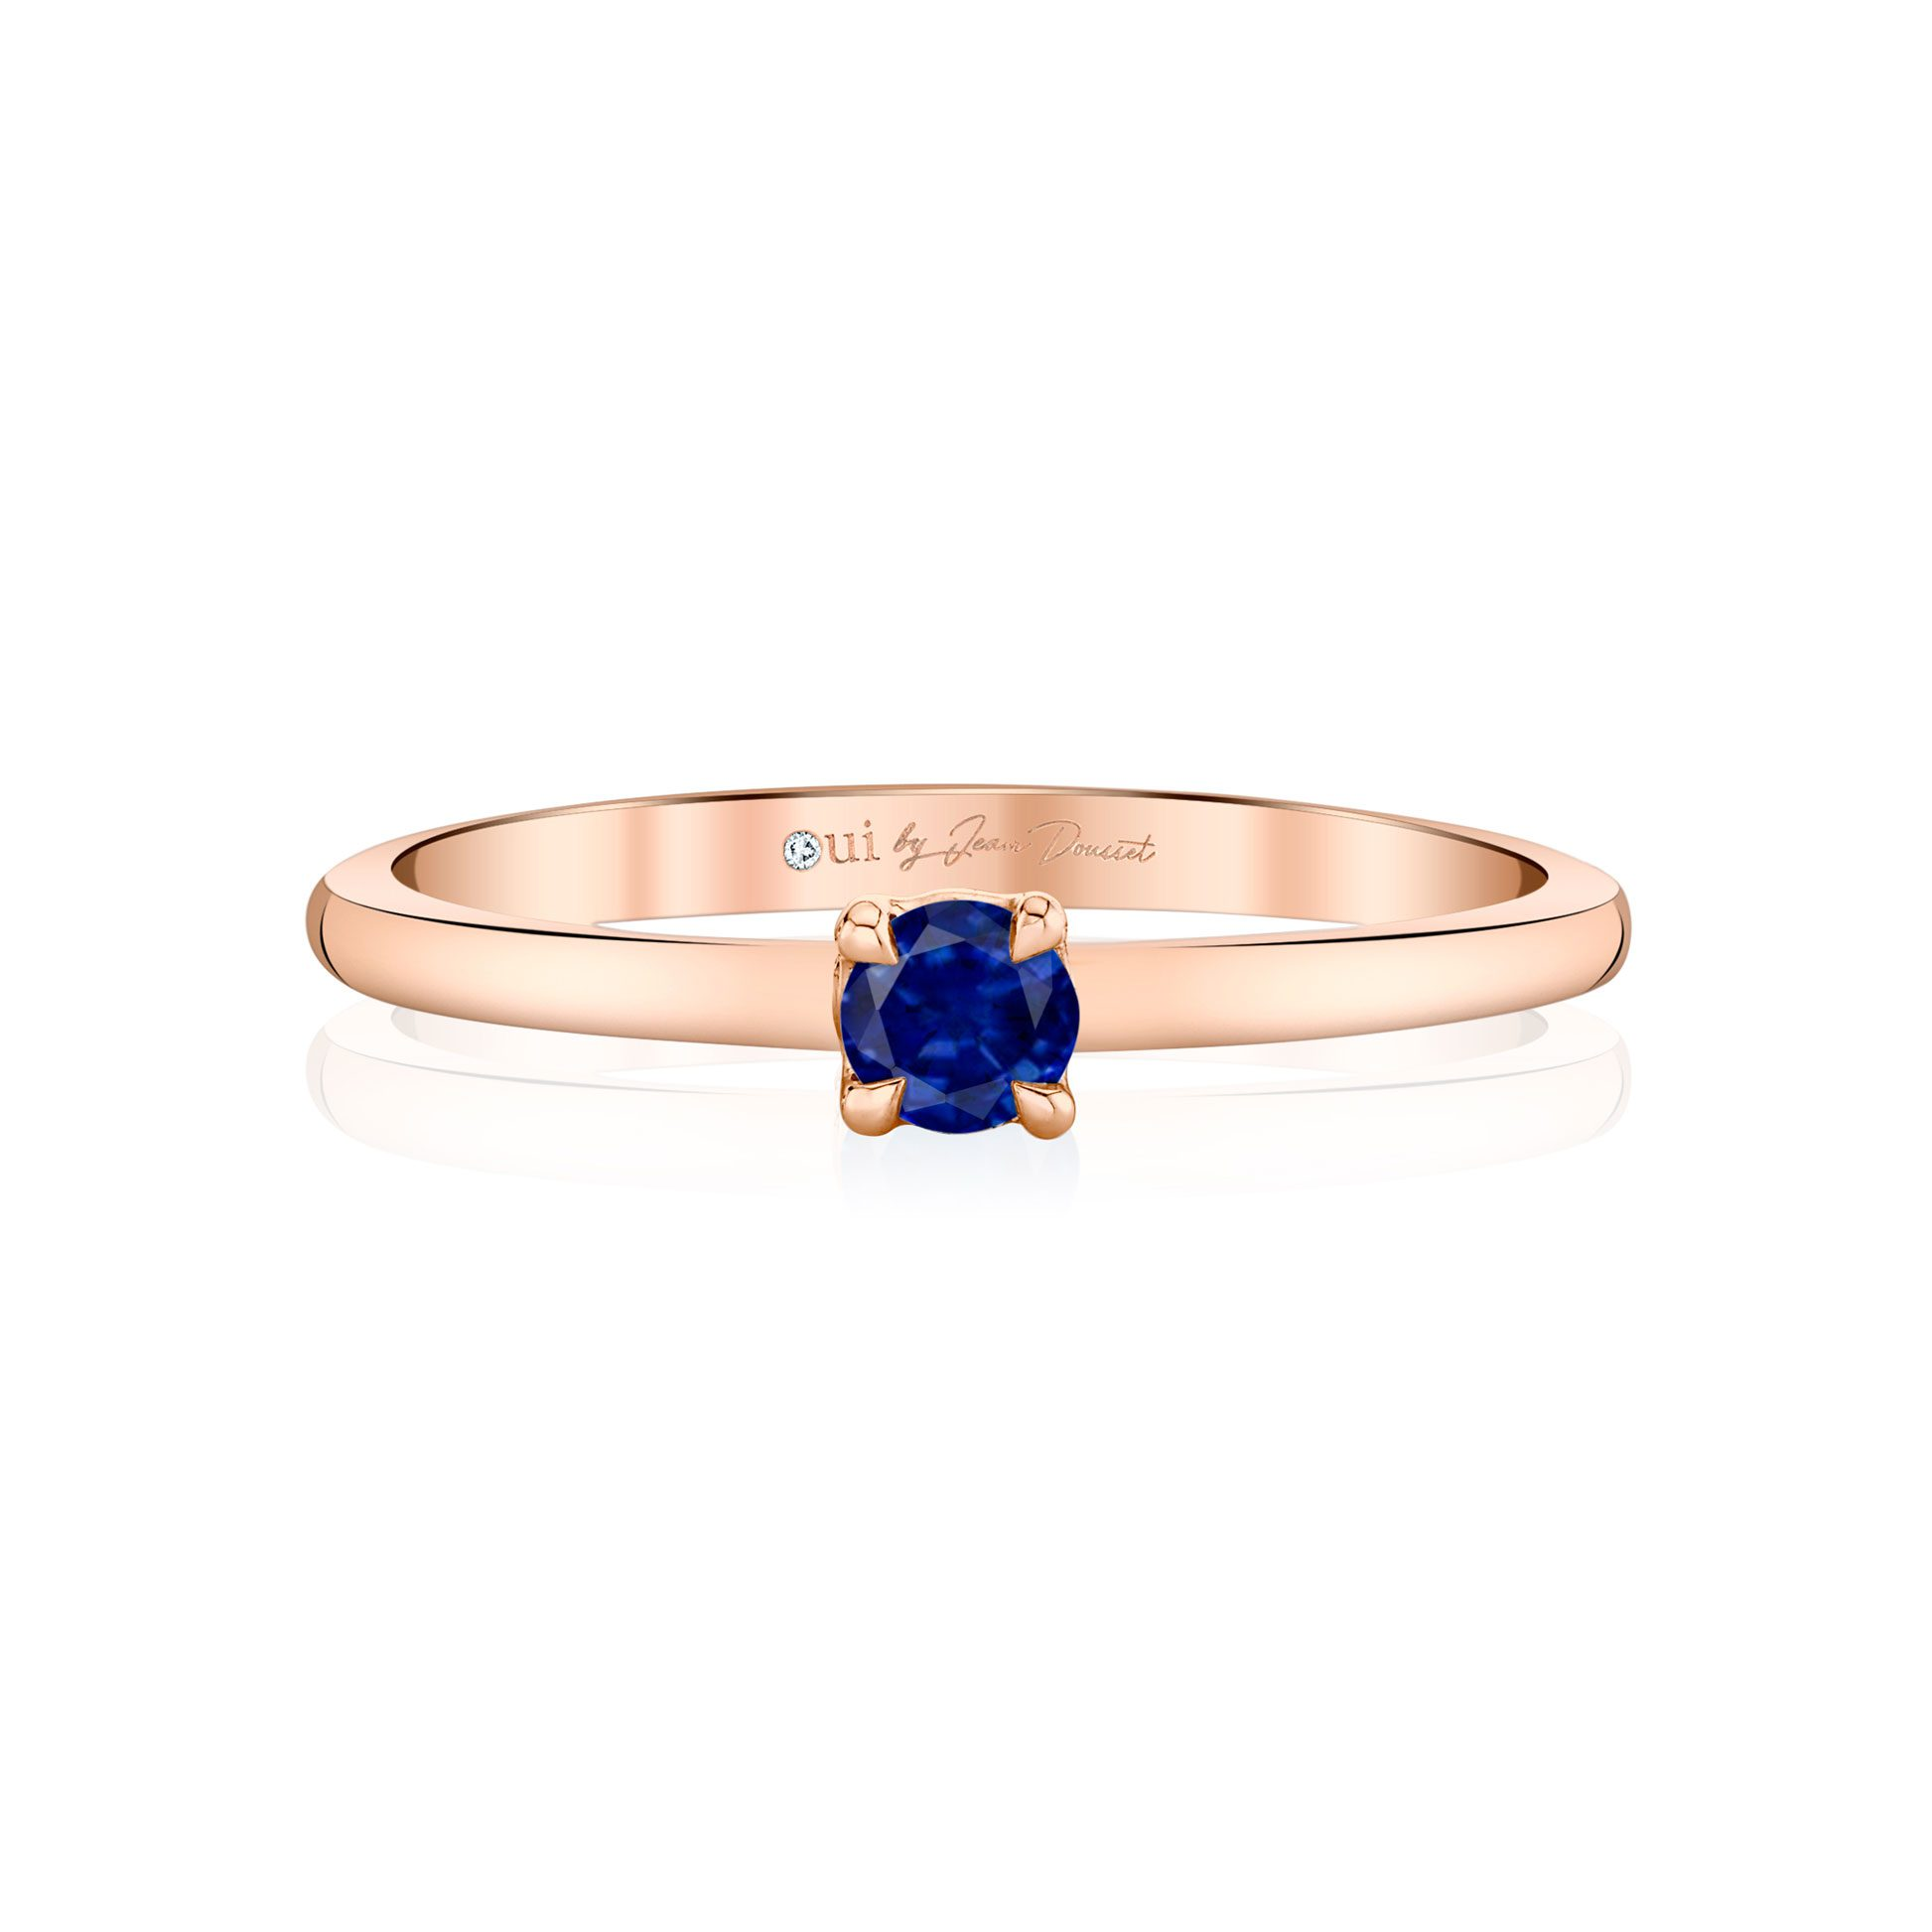 La Petite Round Brilliant Blue Sapphire Ring in 18k Rose Gold Front View by Oui by Jean Dousset